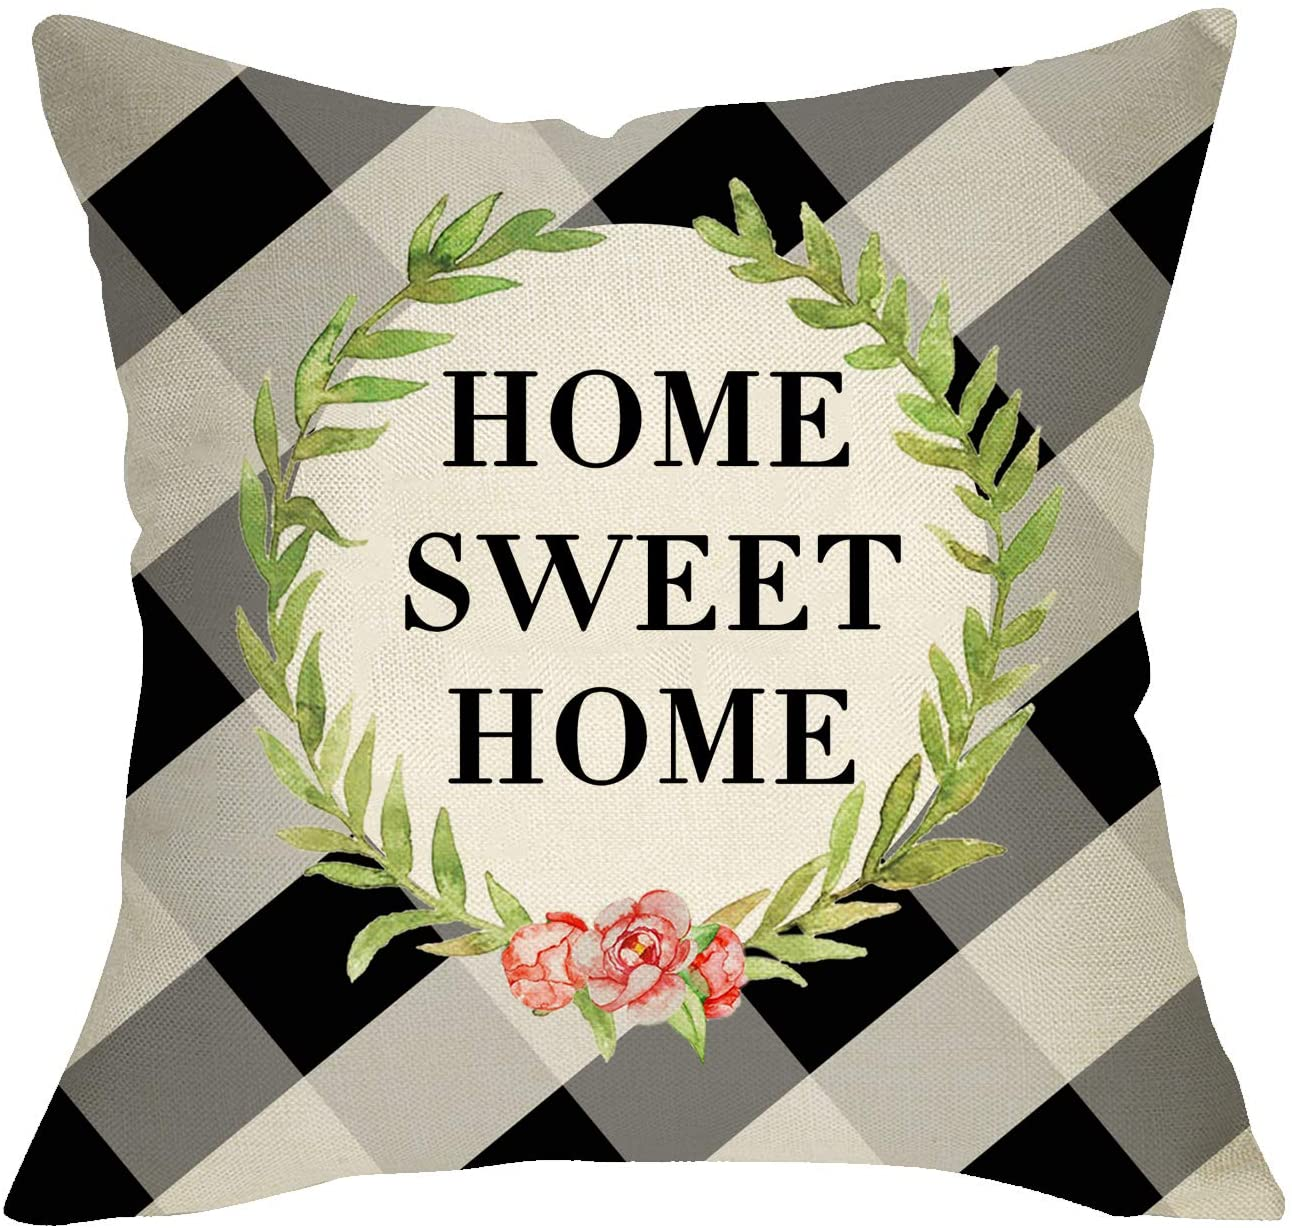 Fbcoo Home Sweet Home Throw Pillow Cover, Farmhouse Decorative Cushion Case Olive Branch Buffalo Plaid Check, Spring Summer Home Decorations Square Pillowcase Decor for Couch 18 x 18 Inch Cotton Linen